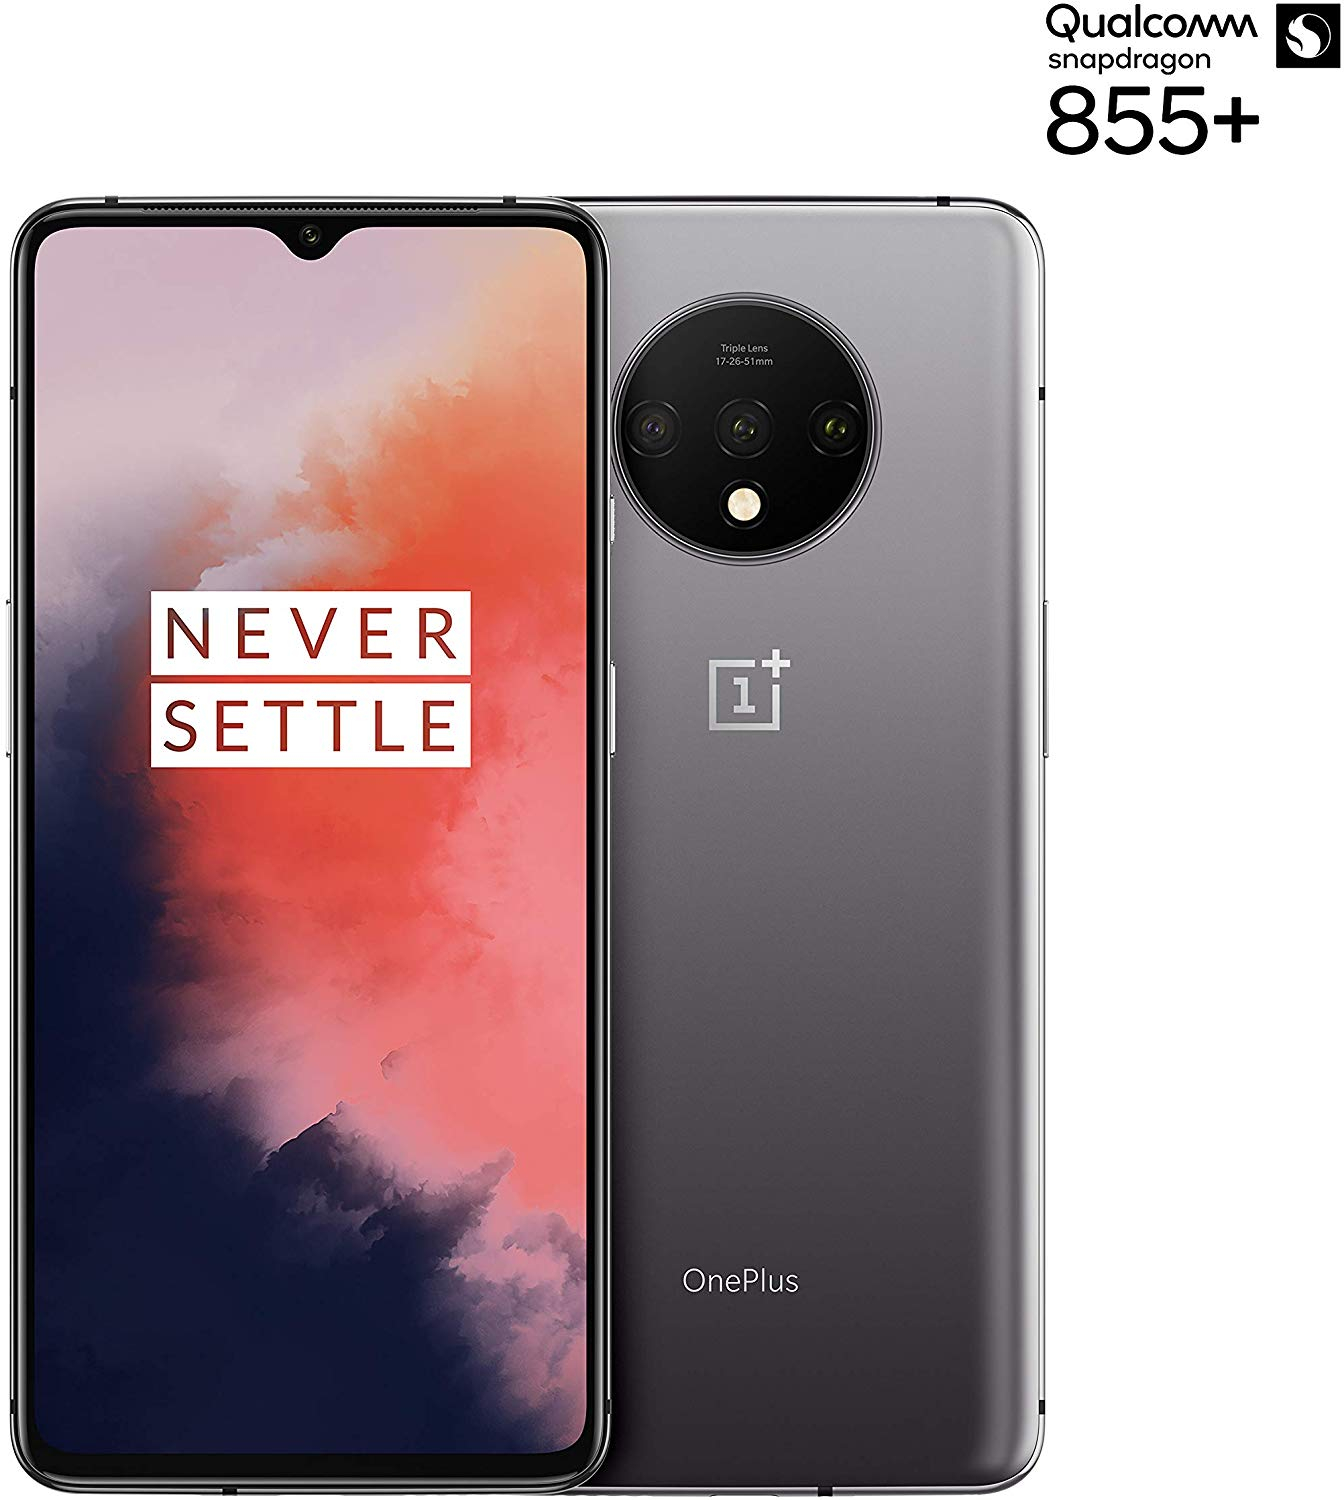 Phone OnePlus 7 T, Silver Color Frosted (Frosted Silver), 128 GB Of Internal Memory 8 GB RAM, Dual SIM, Touch